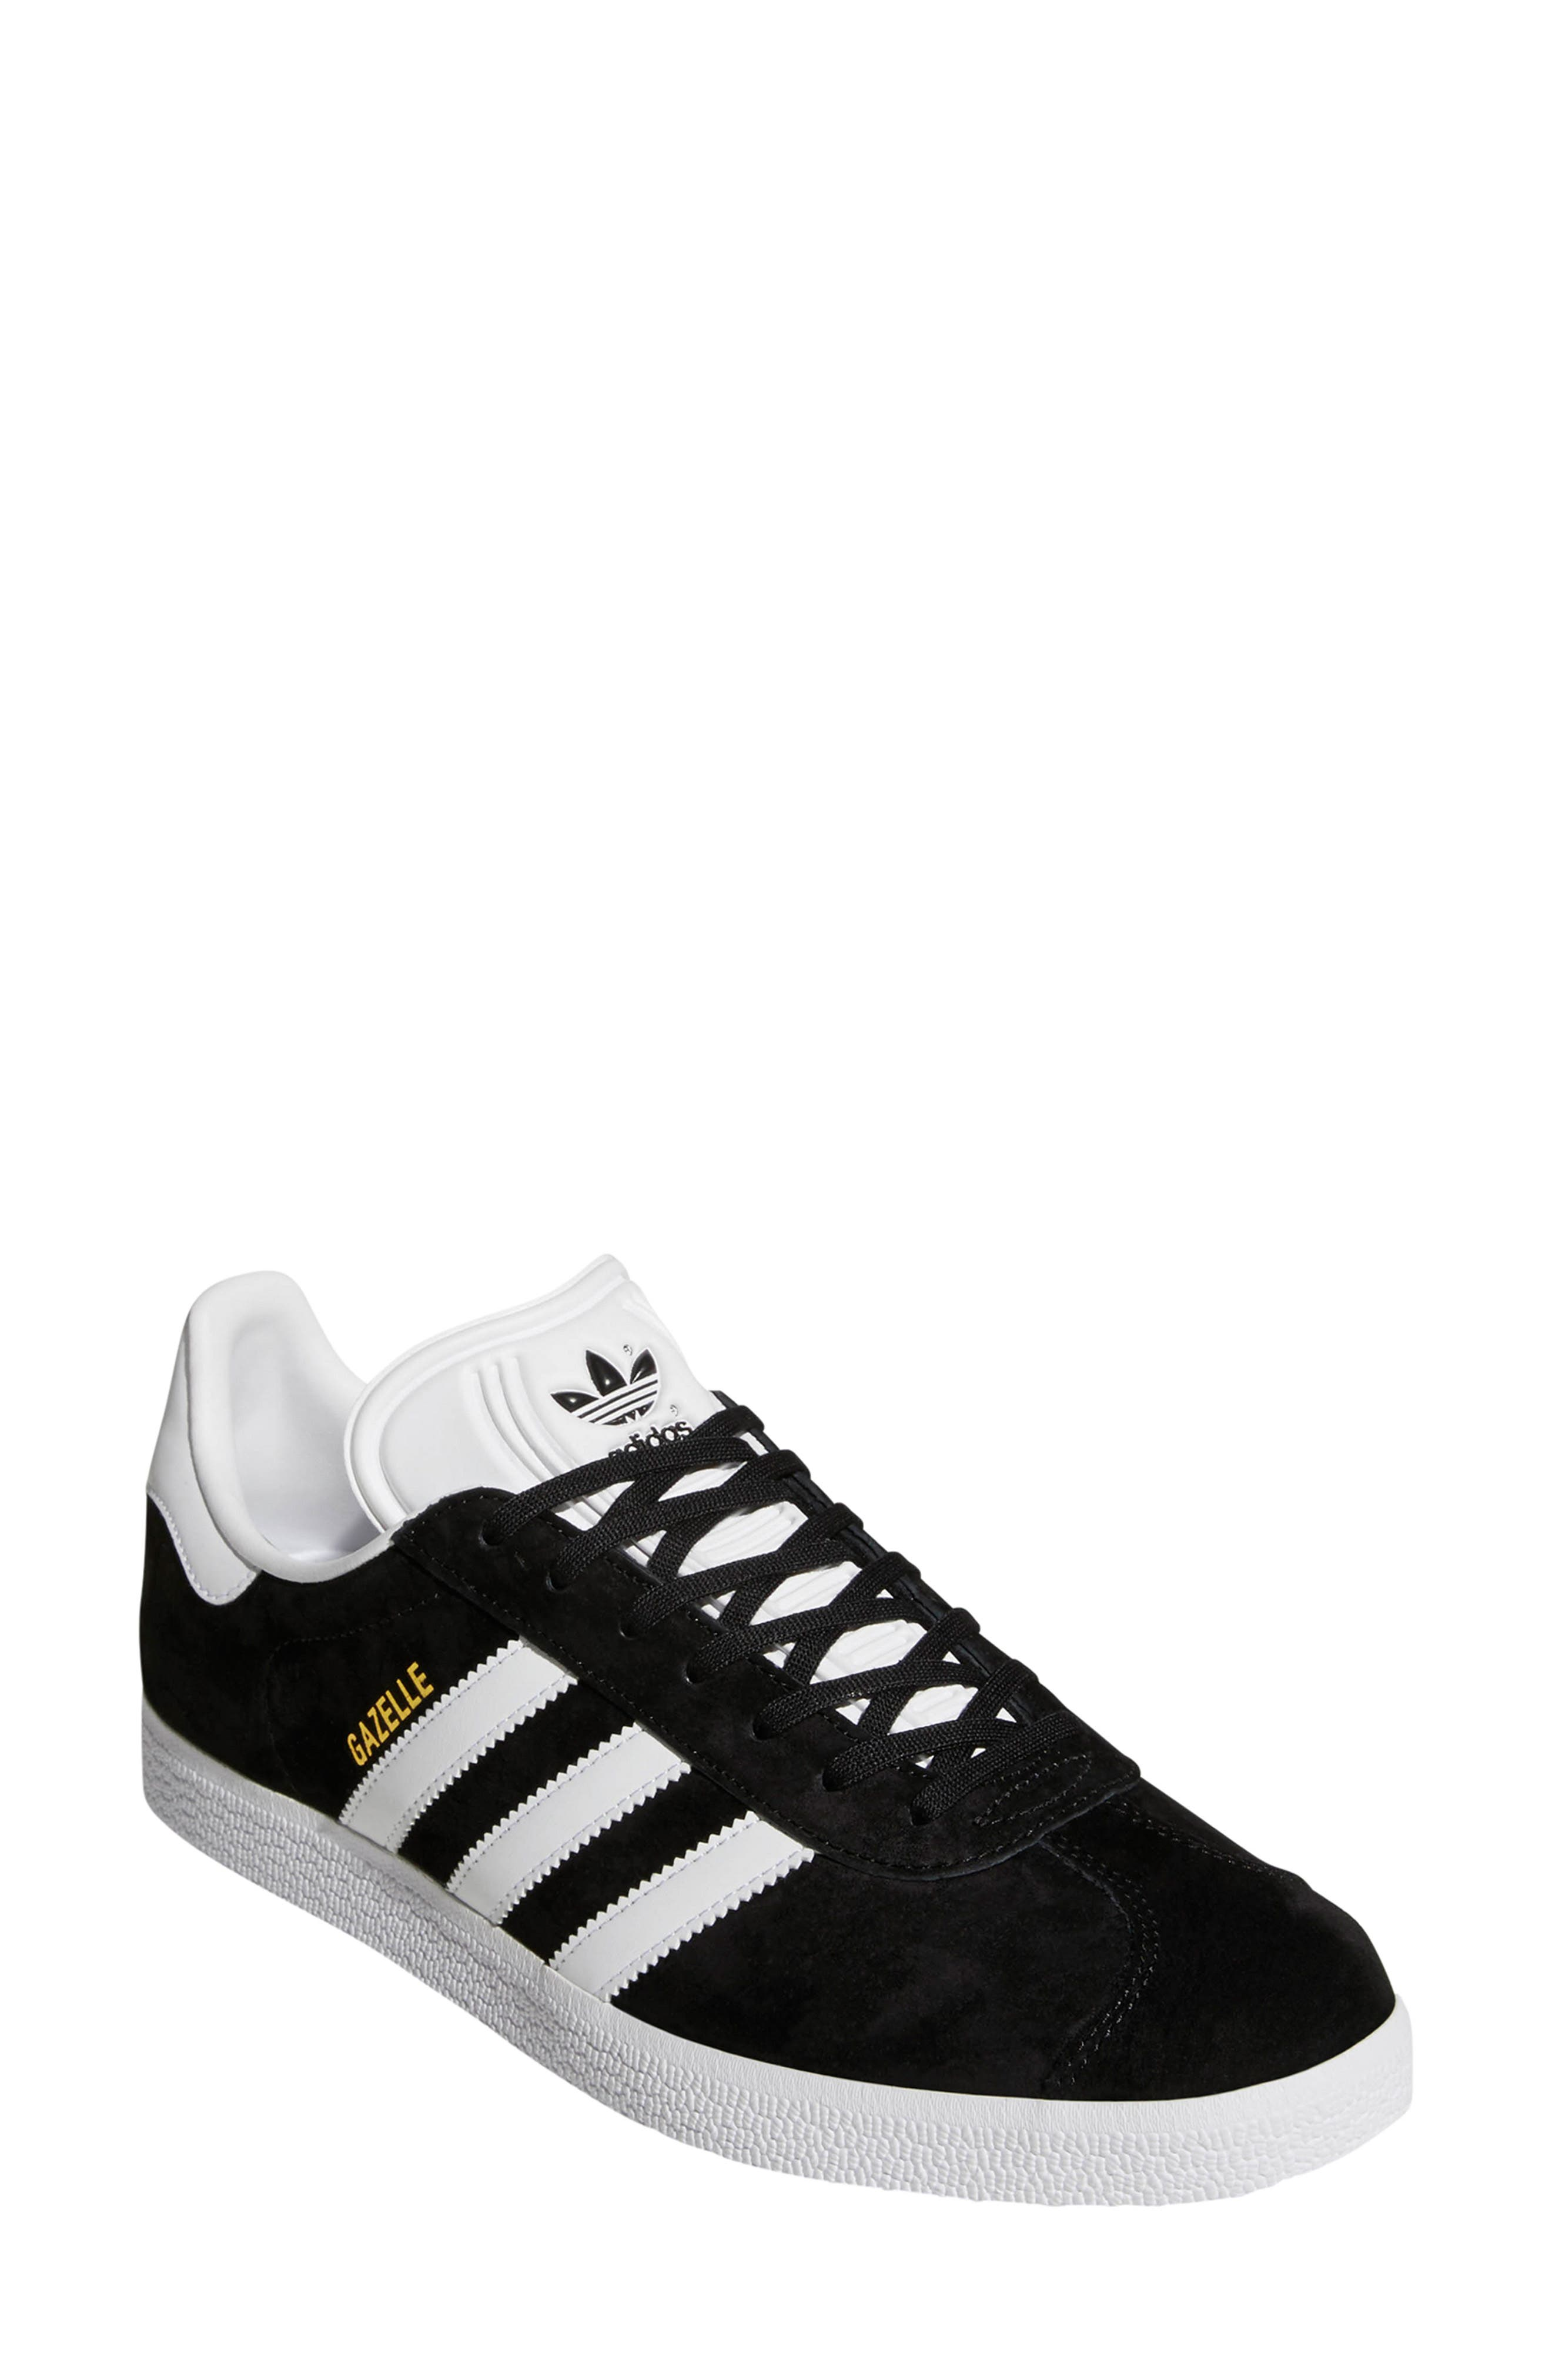 ADIDAS, Gazelle Sneaker, Main thumbnail 1, color, 003